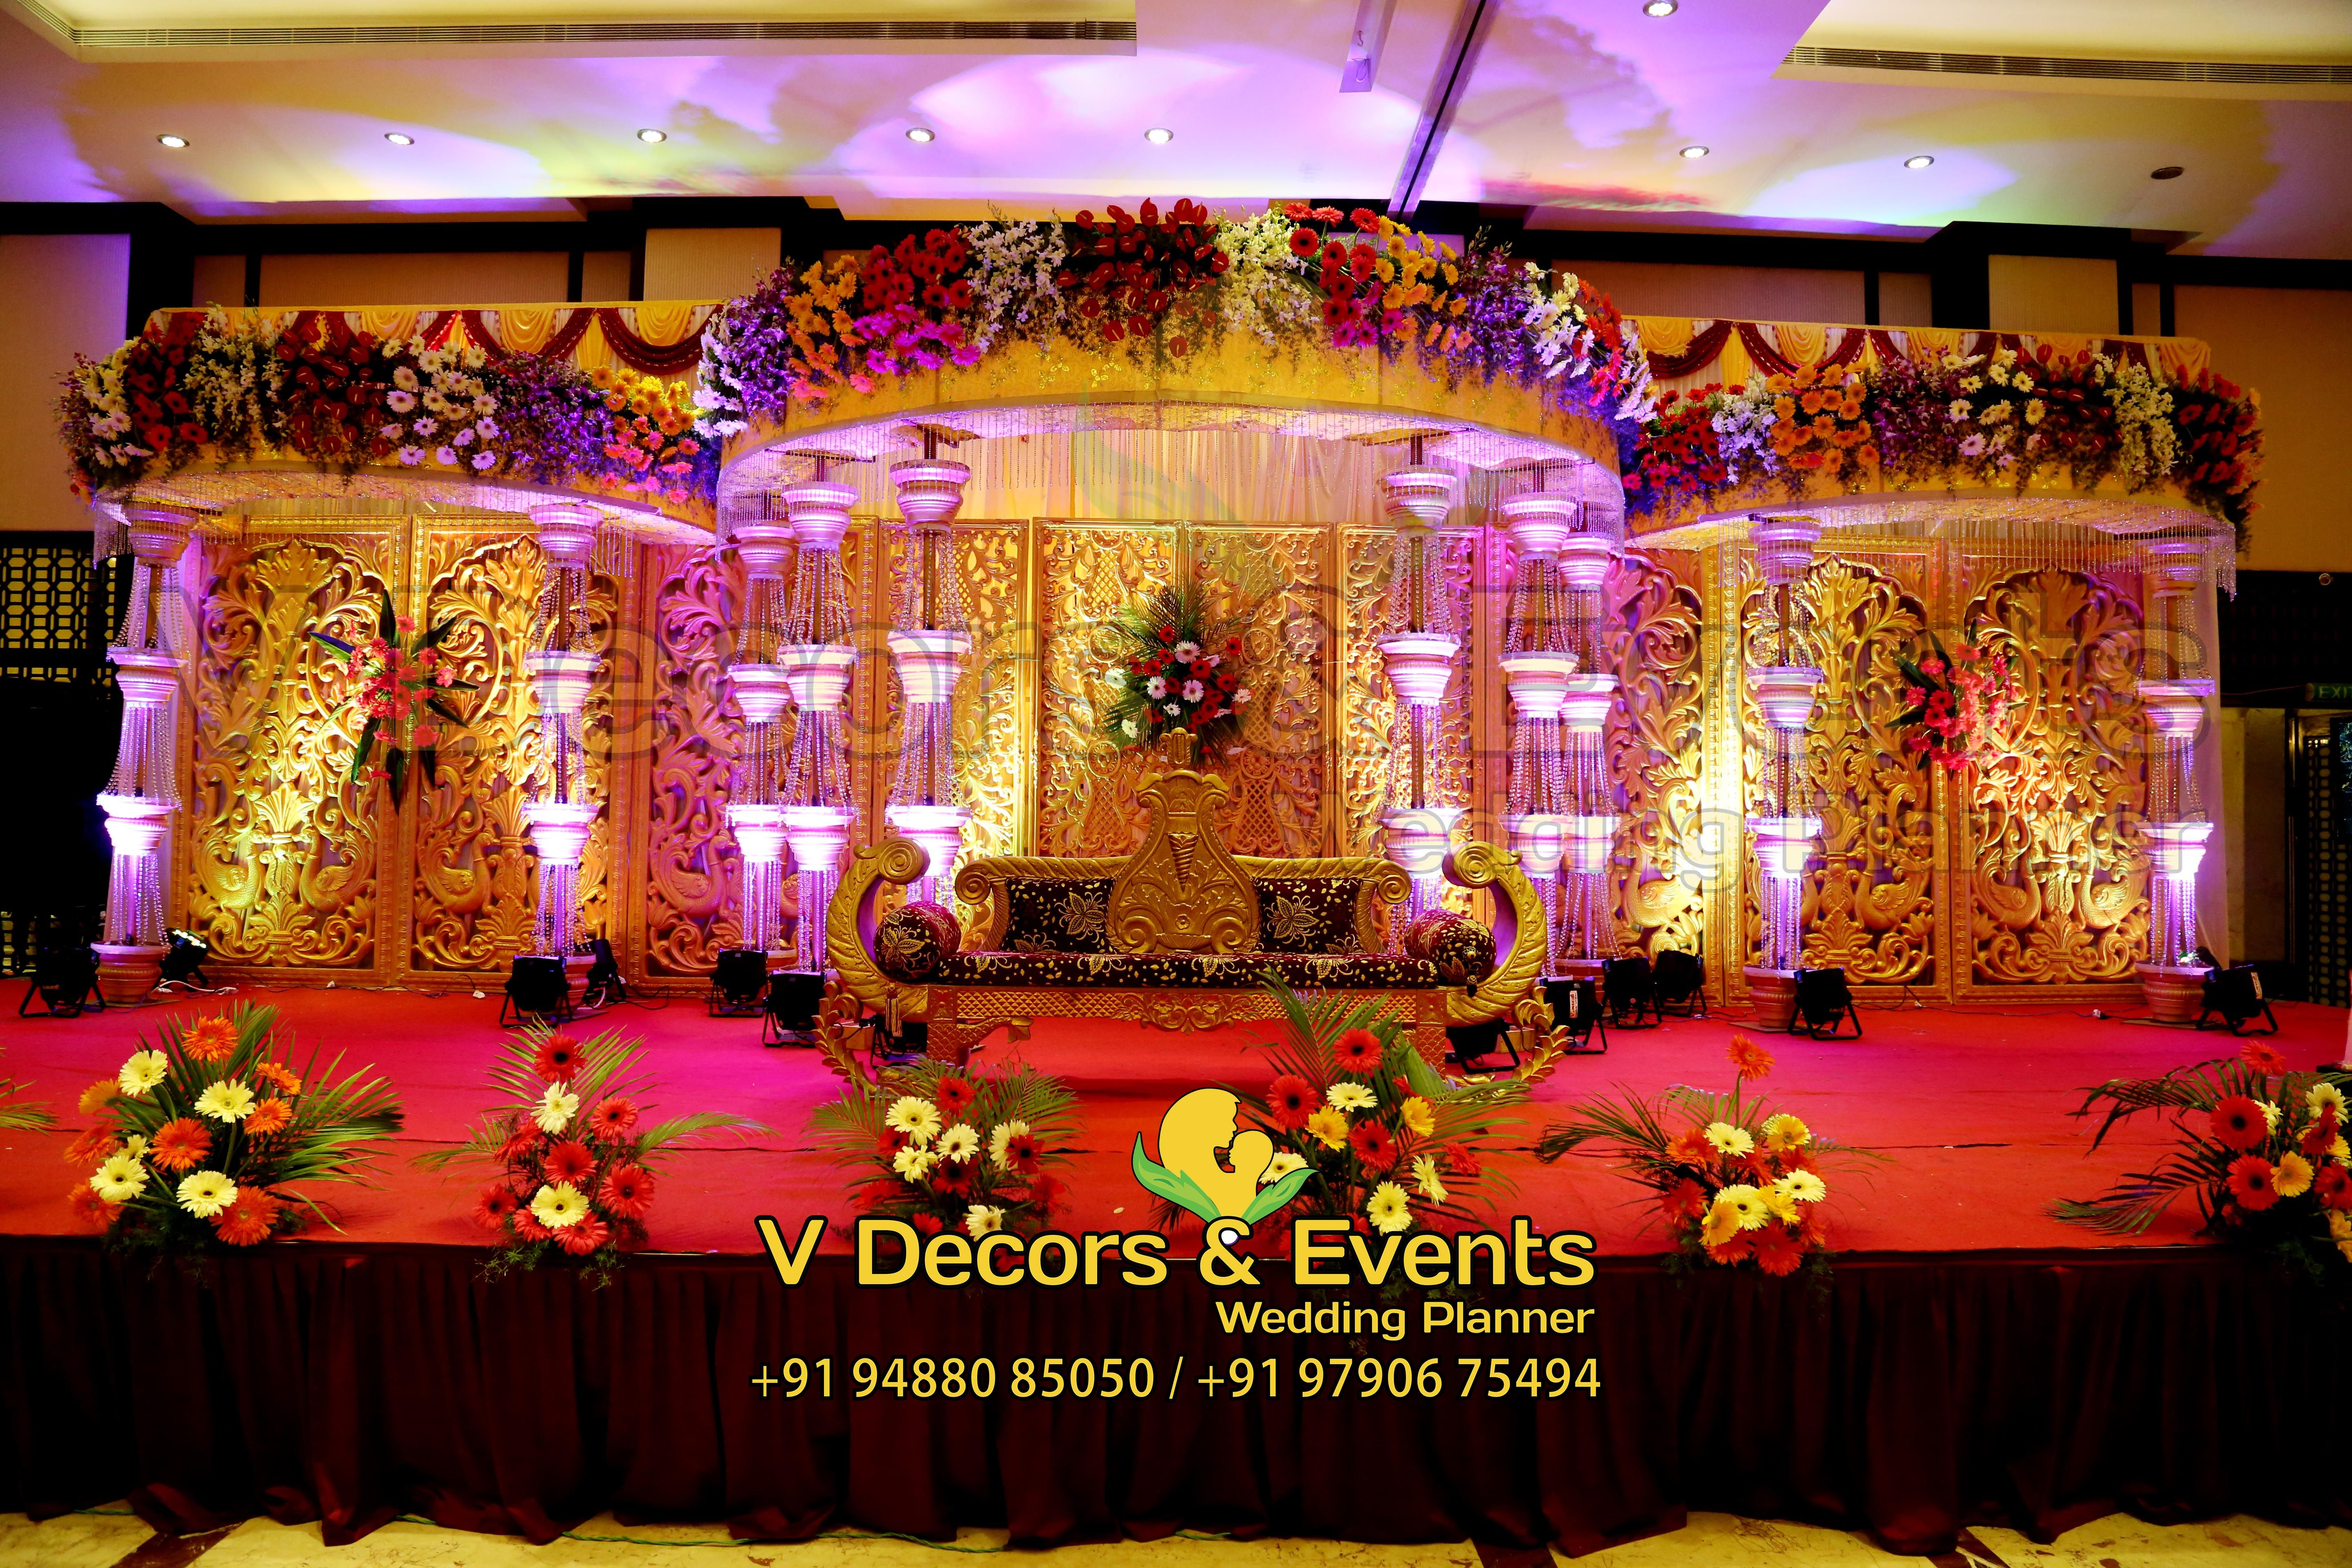 Pin by V Decors and Events on Wedding Decorations in